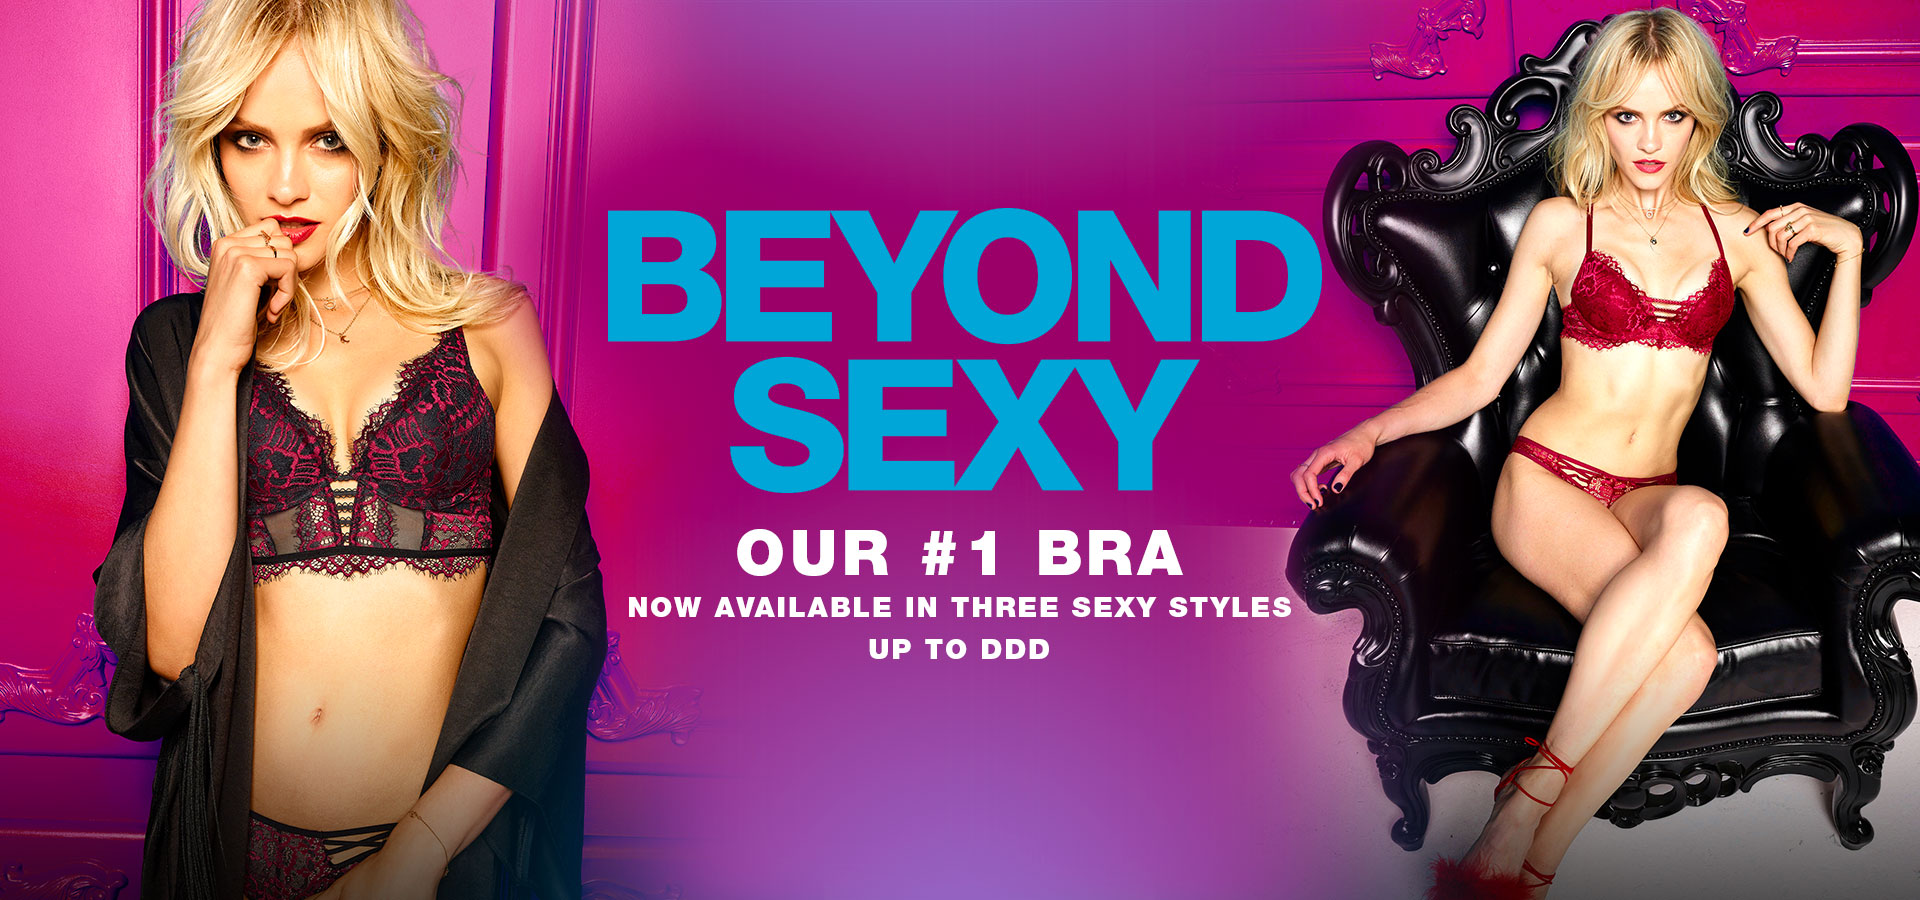 Beyond Sexy. Our #1 bra. Now available in three sexy styles. Up to DDD.